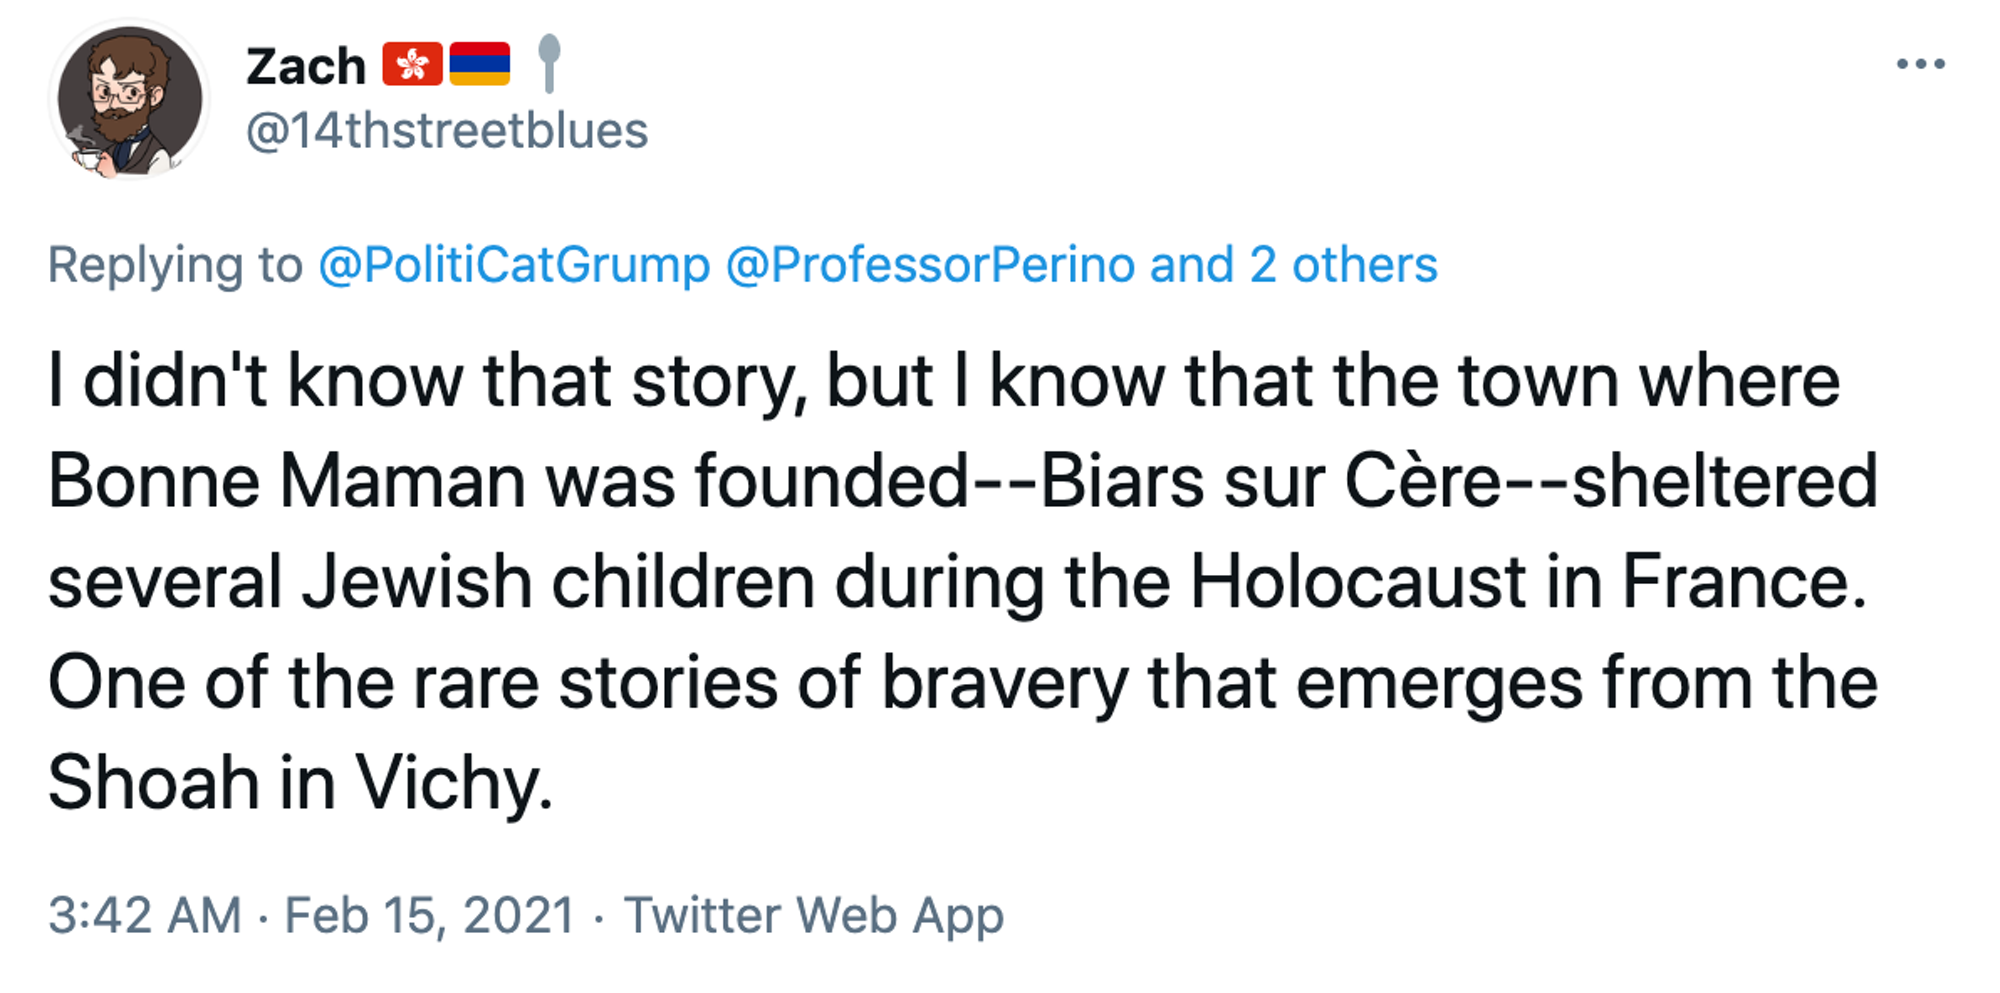 I didn't know that story, but I know that the town where Bonne Maman was founded--Biars sur Cère--sheltered several Jewish children during the Holocaust in France. One of the rare stories of bravery that emerges from the Shoah in Vichy.